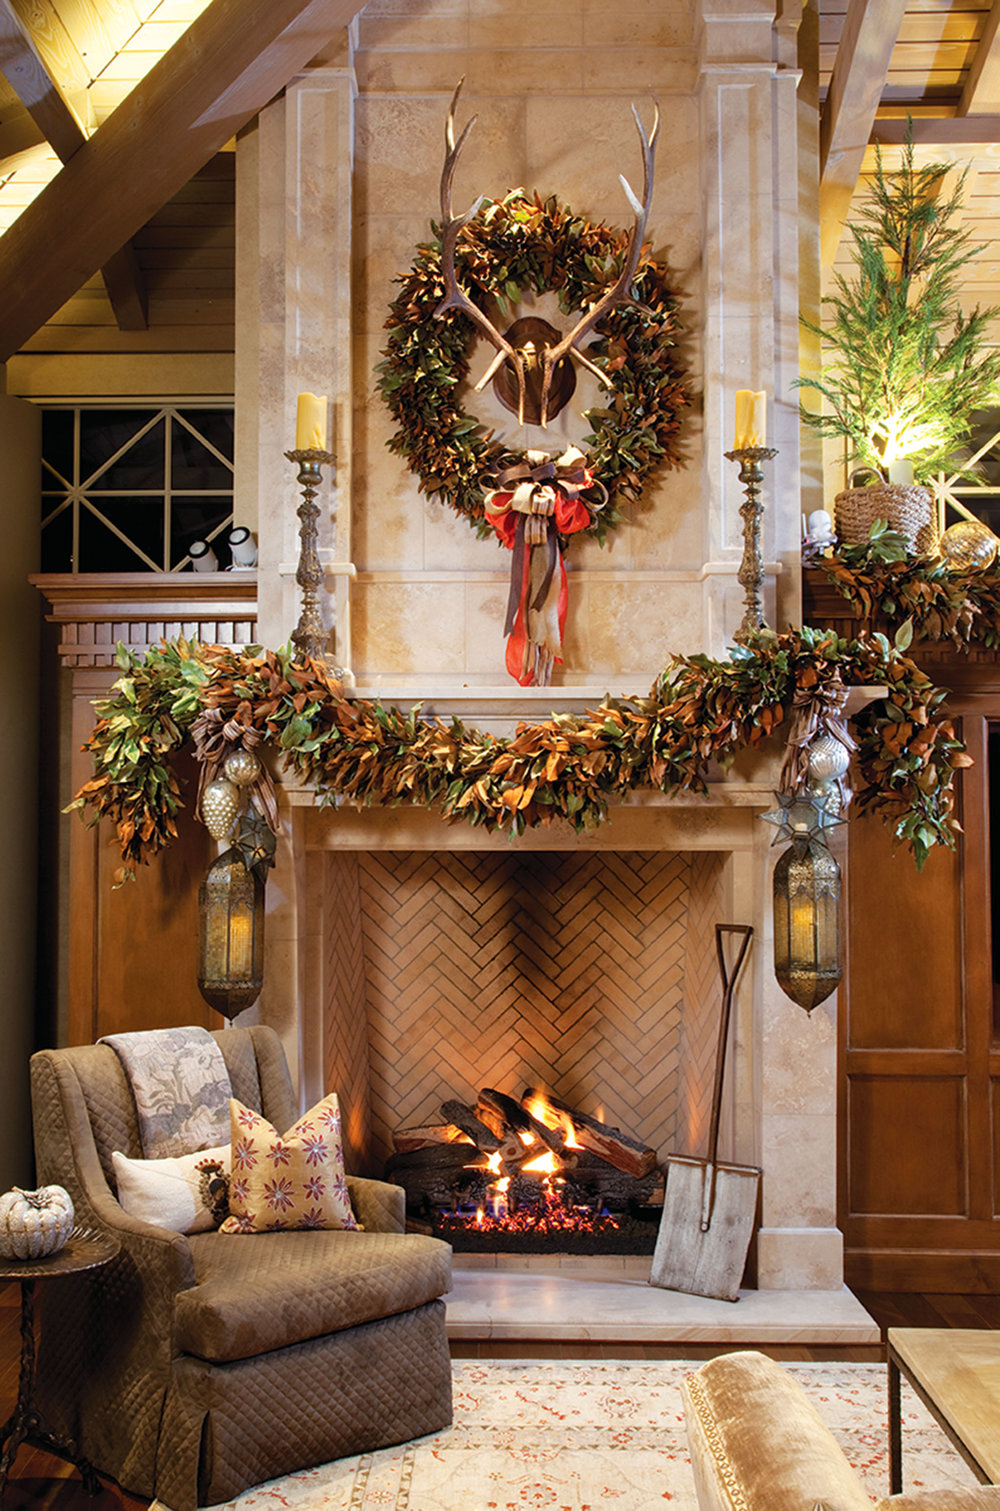 Designer Leanne Michael brought fresh cut Magnolia to create a rich Christmas experience for both eyes and nose. Found objects such as an antique snow shovel and burnished lanterns are a tasteful nod to Christmas tradition.